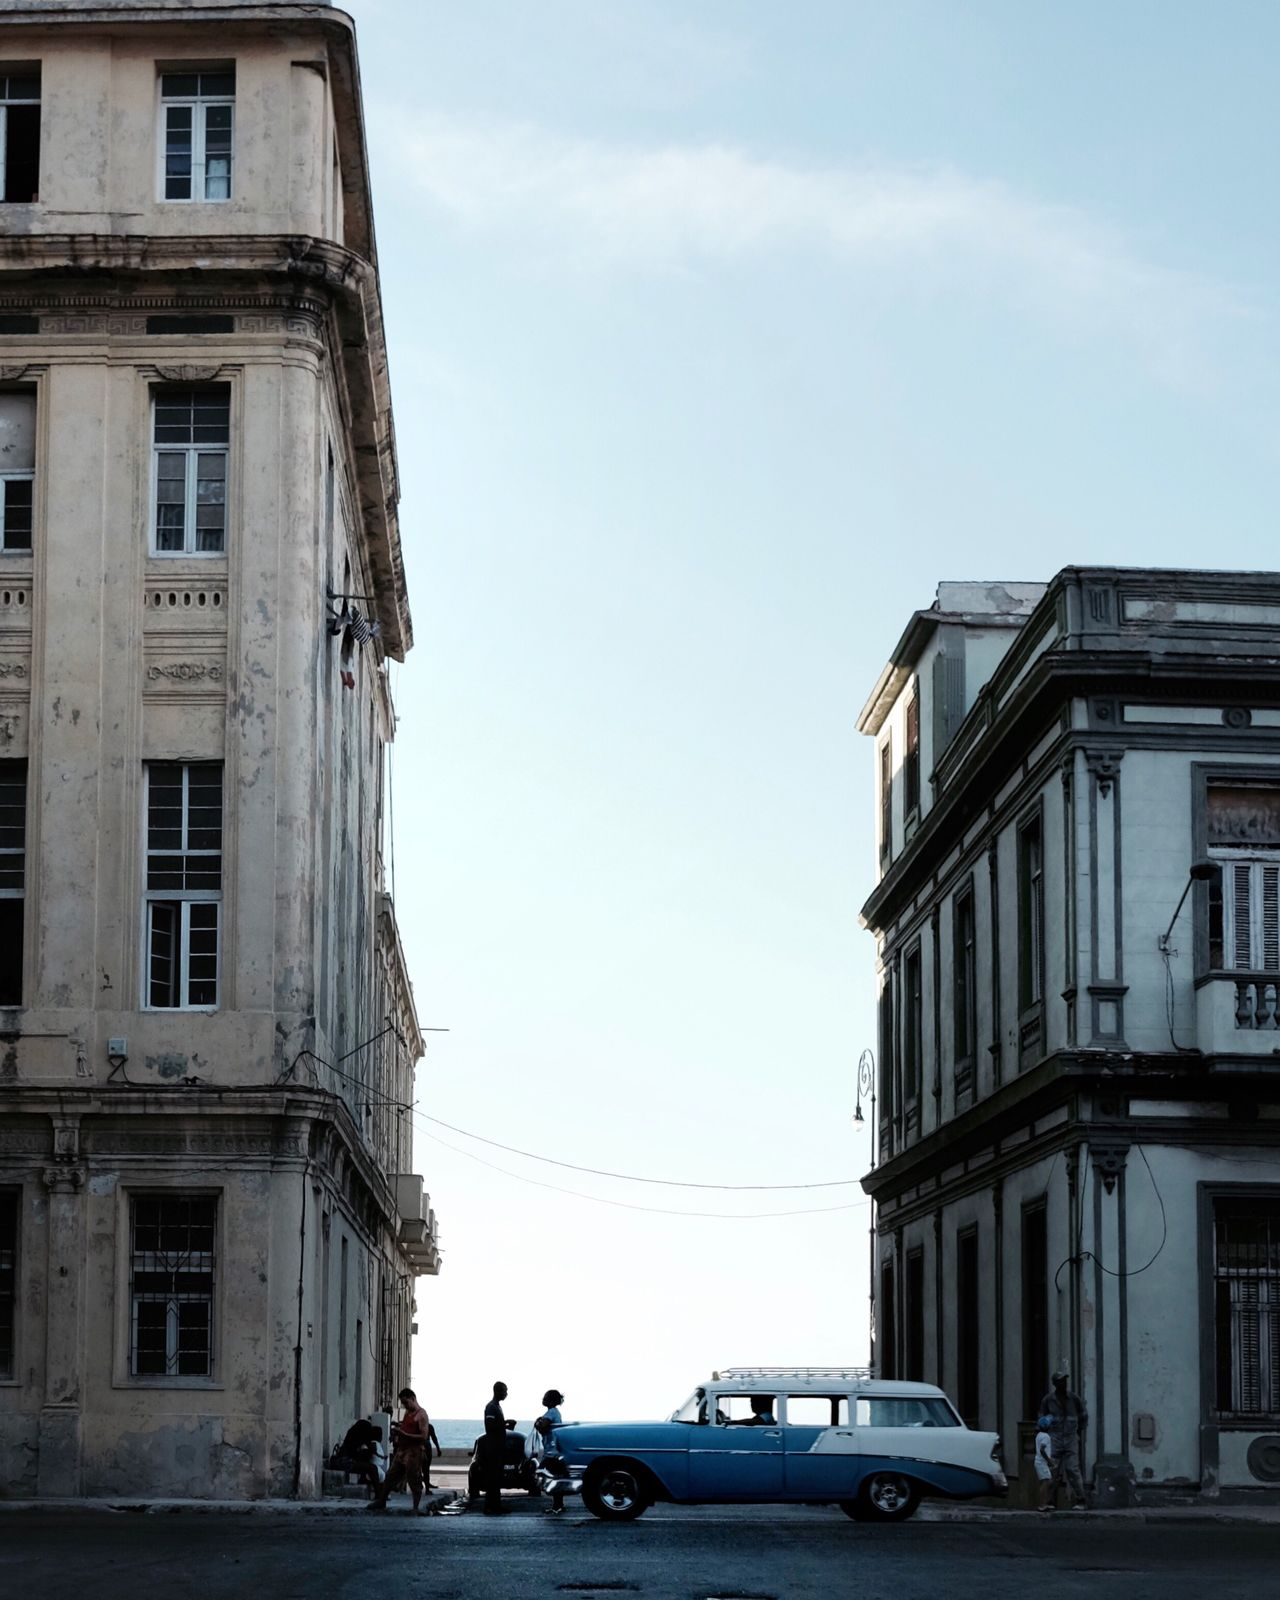 Architecture Built Structure Building Exterior Car Sky Real People Land Vehicle Cloud - Sky Transportation Day Outdoors Men People Travel Cuba Havana Photographing The Street Photographer - 2017 EyeEm Awards